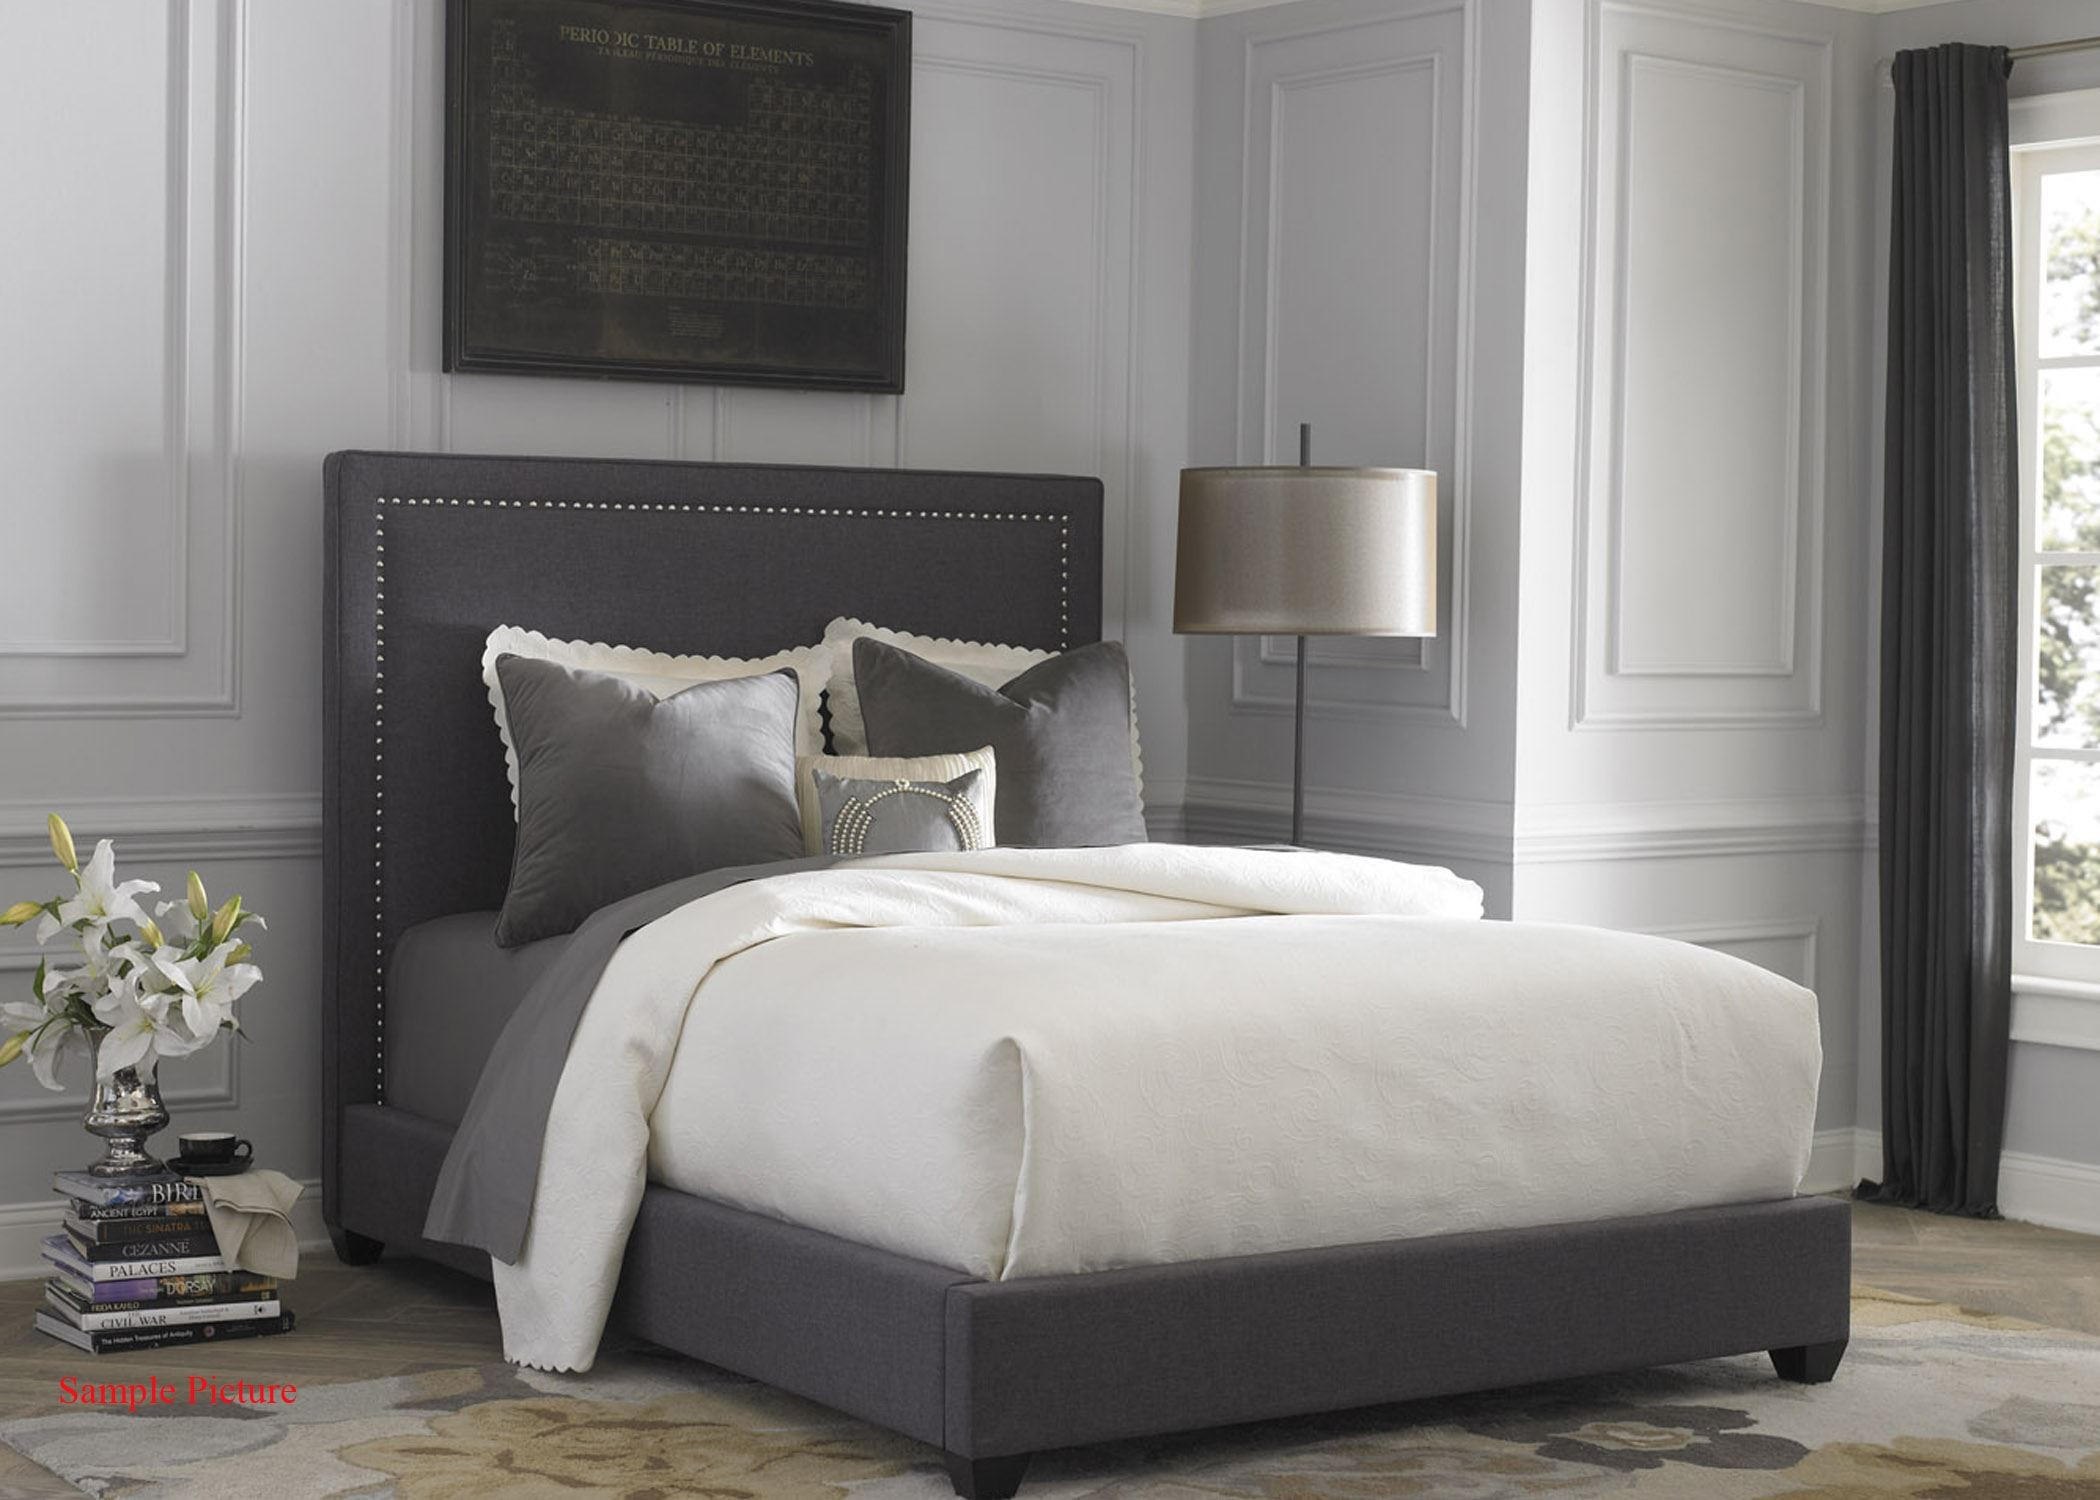 Dark Gray Upholstered King Panel Bed From Liberty 350